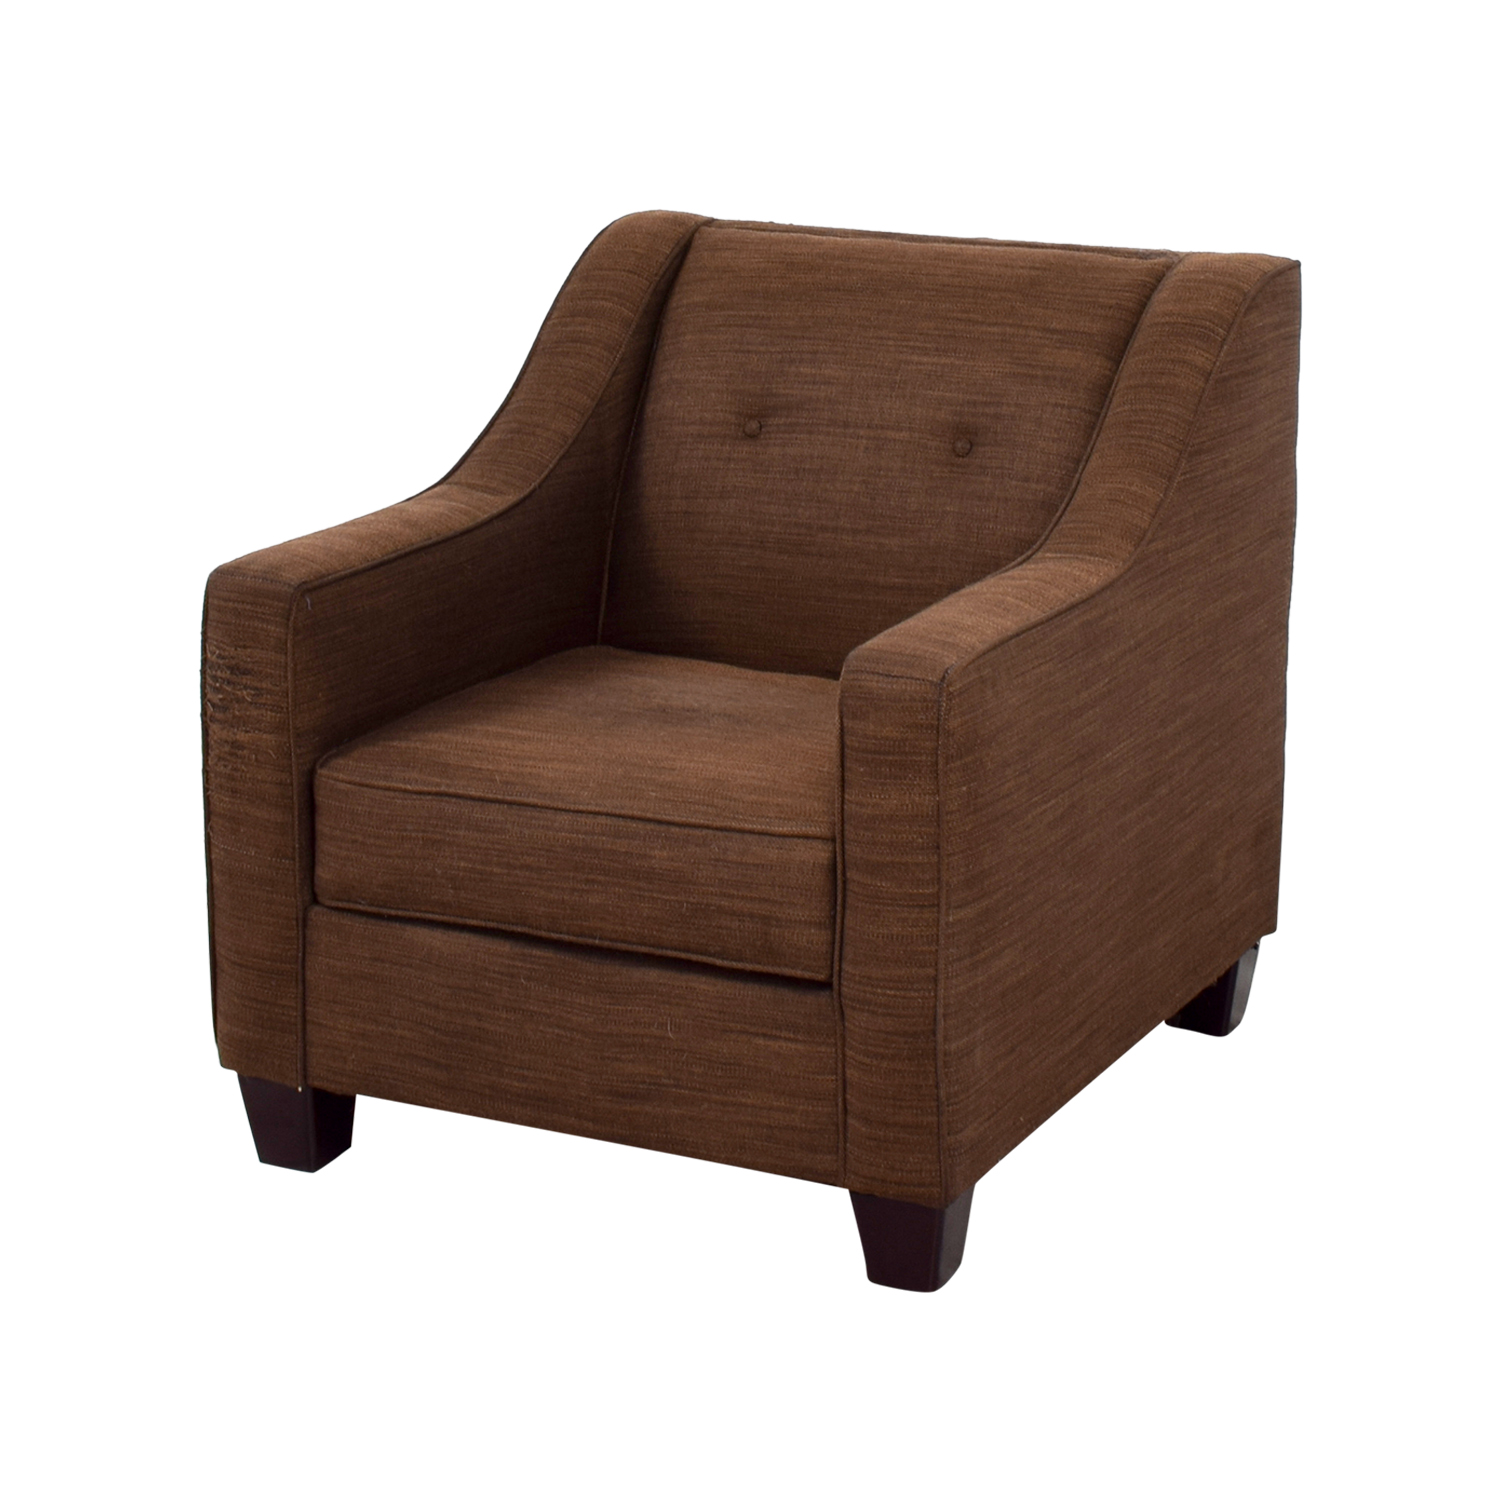 53% OFF Brown Chair Chairs